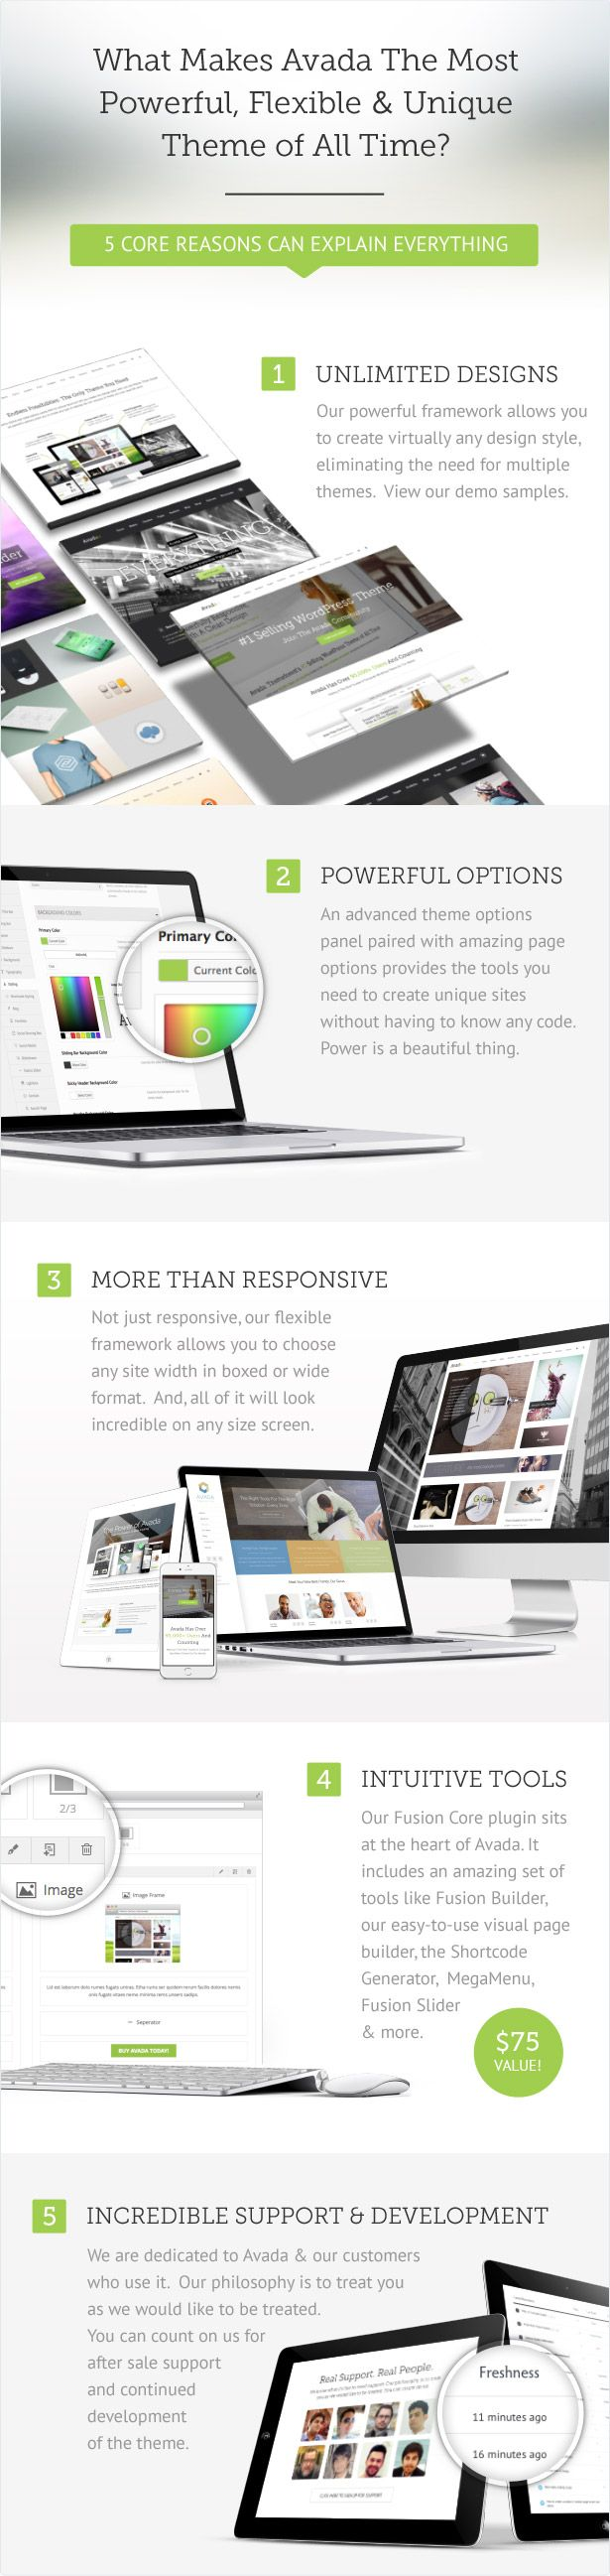 Avada Theme (cool blog grid layout; clean and simple design)